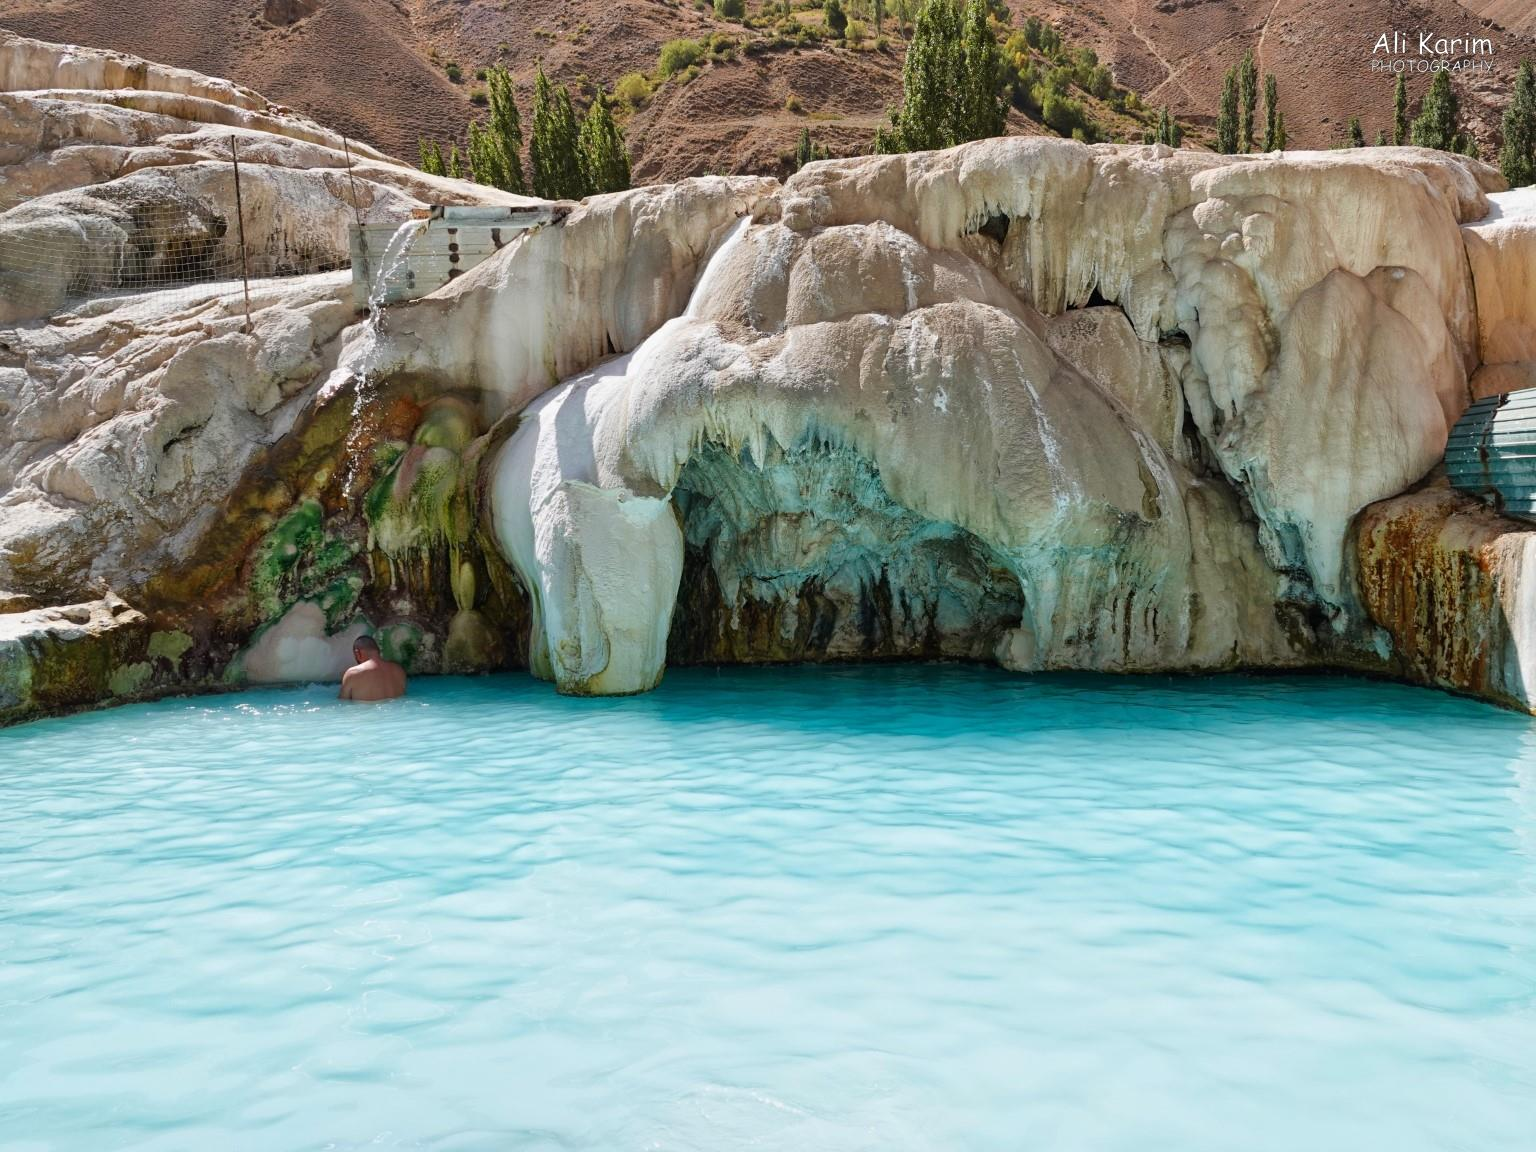 Onto Khorog, Tajikistan, Natural hot springs pool at Garam Chasma